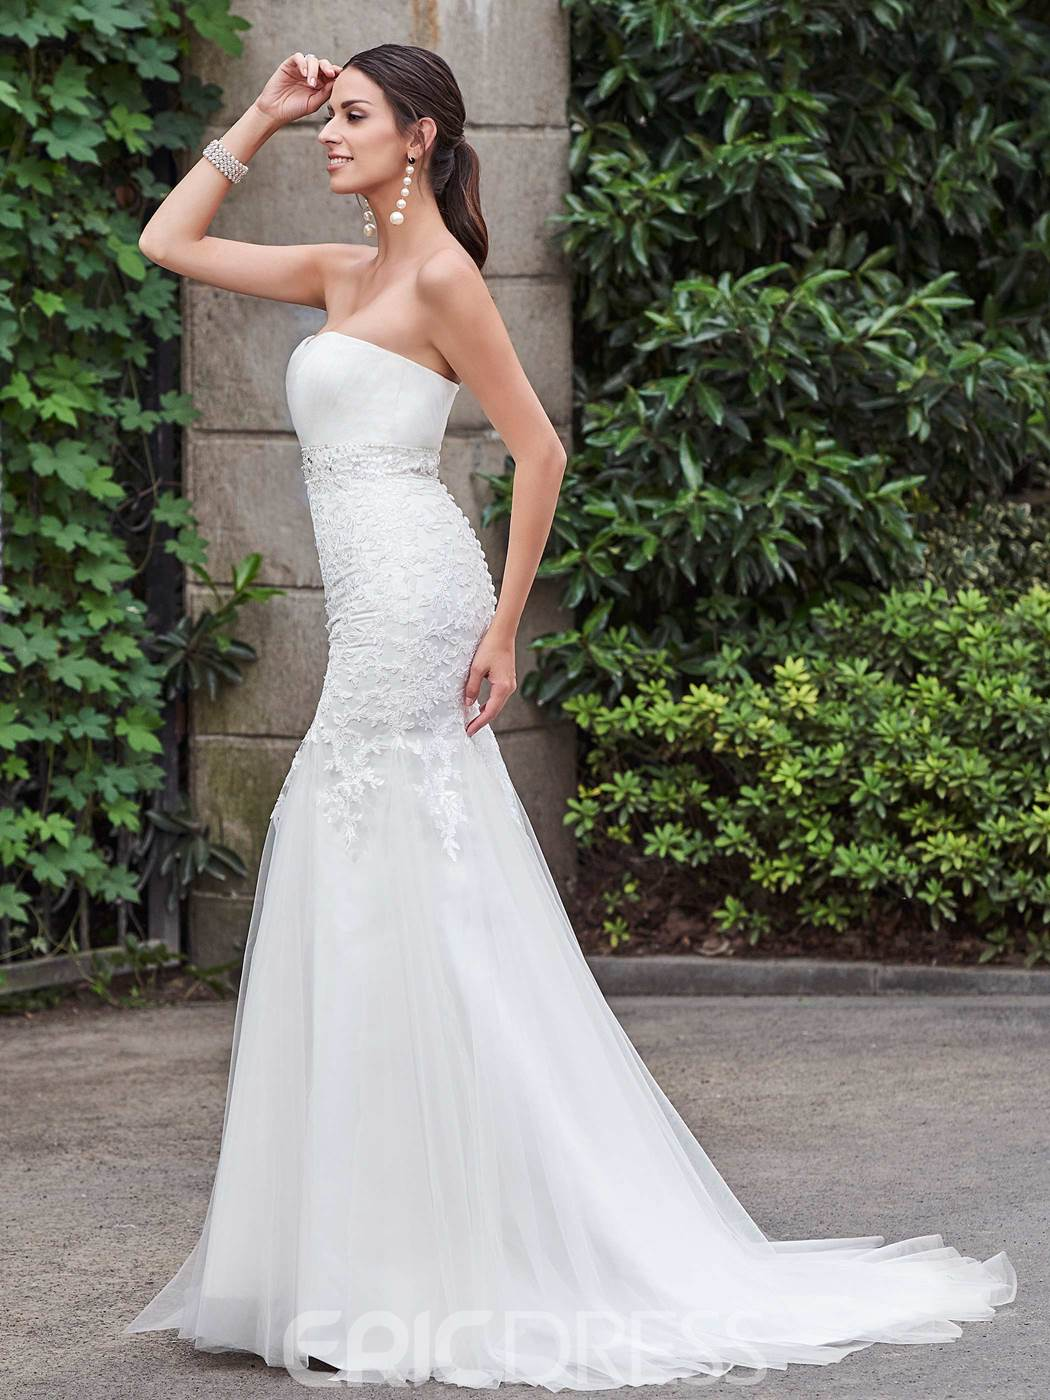 Ericdress High Quality Appliques Beaded Sweetheart Mermaid Wedding Dress